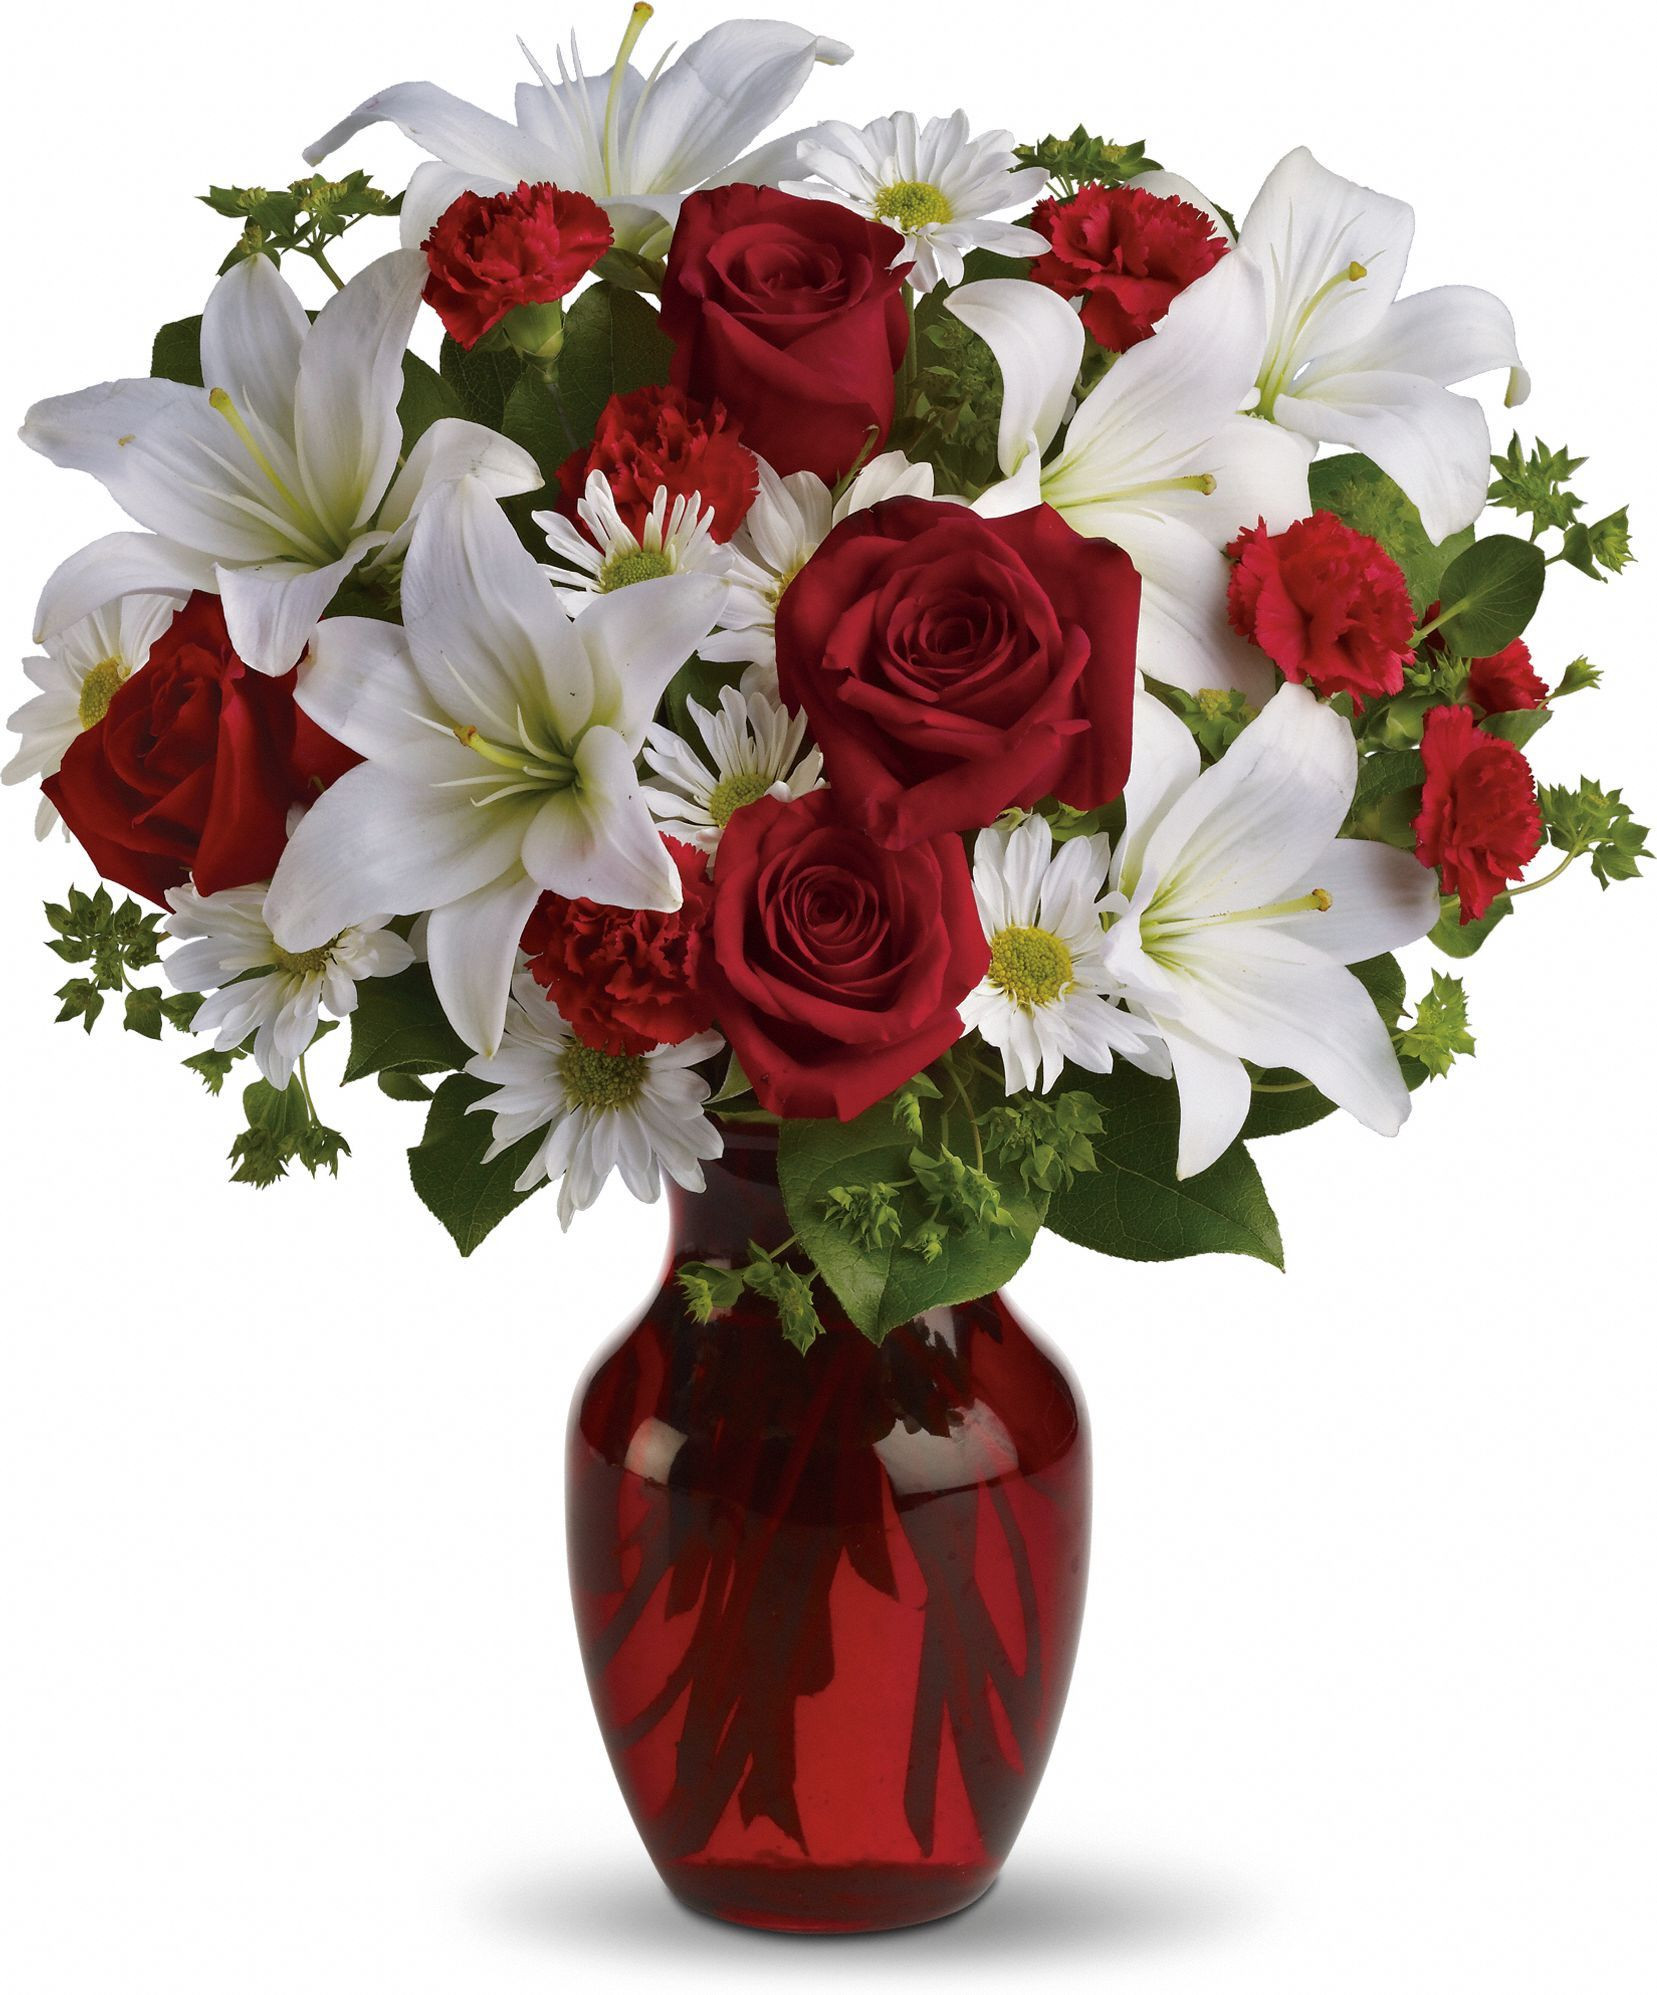 Flowers Online Coupons Awesome Be My Love Bouquet with Red Roses Save On This Bouquet and Many